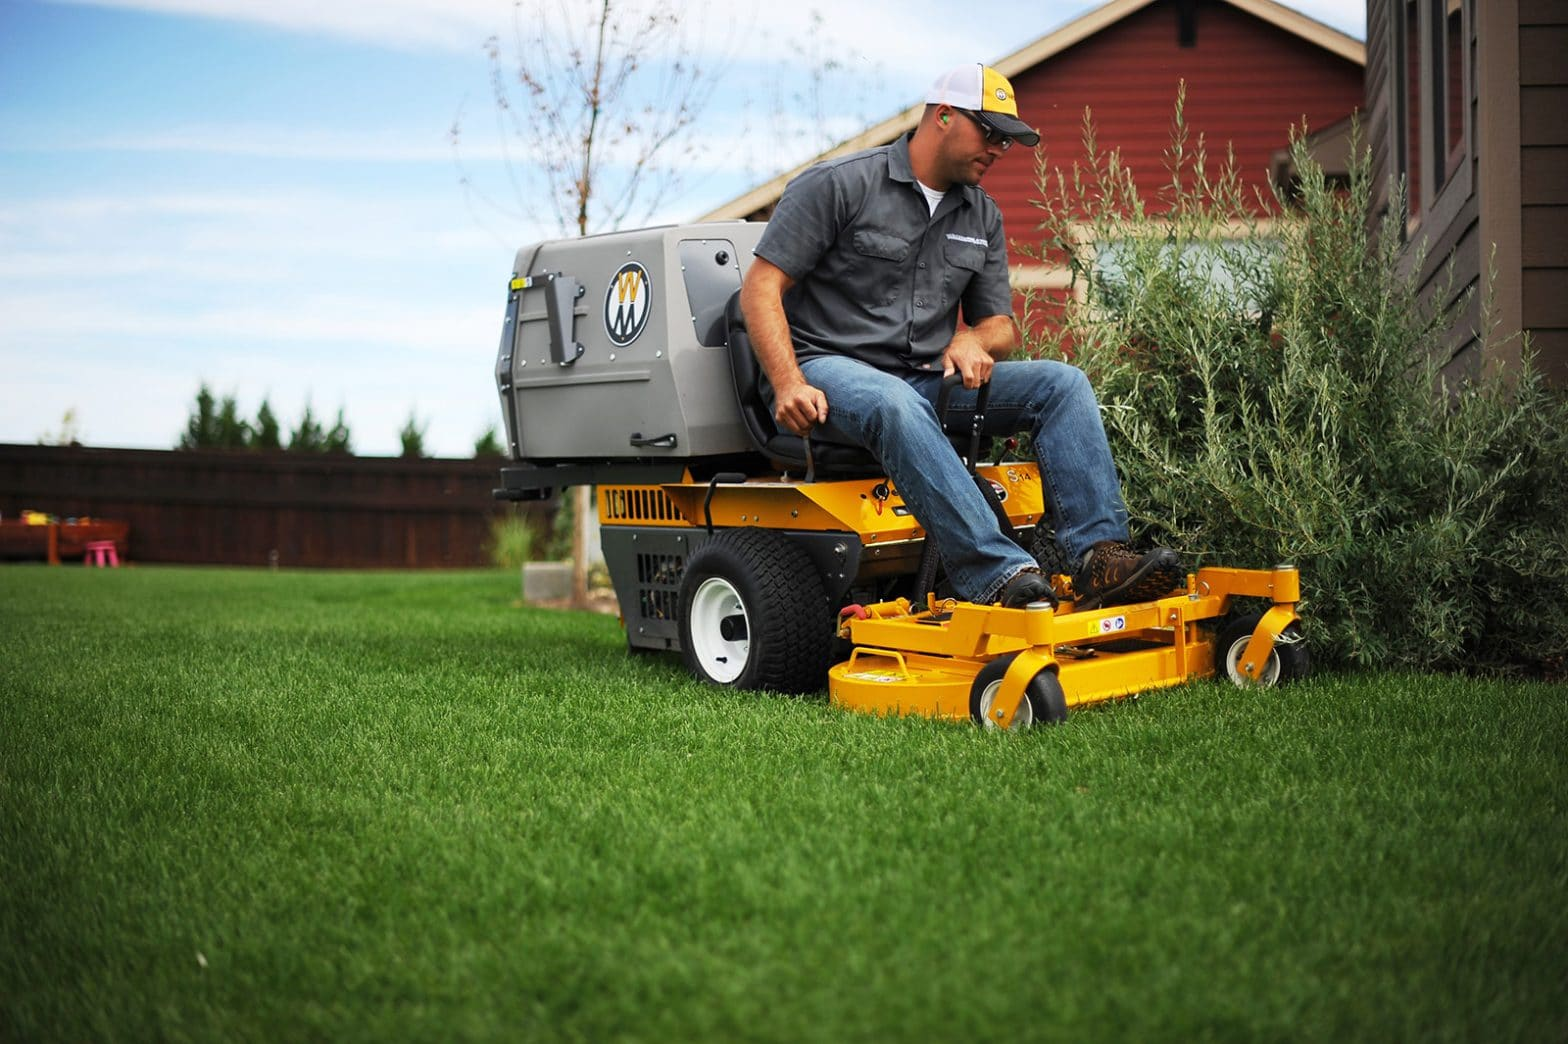 Commercial Turf Equipment Uses CPI Switches